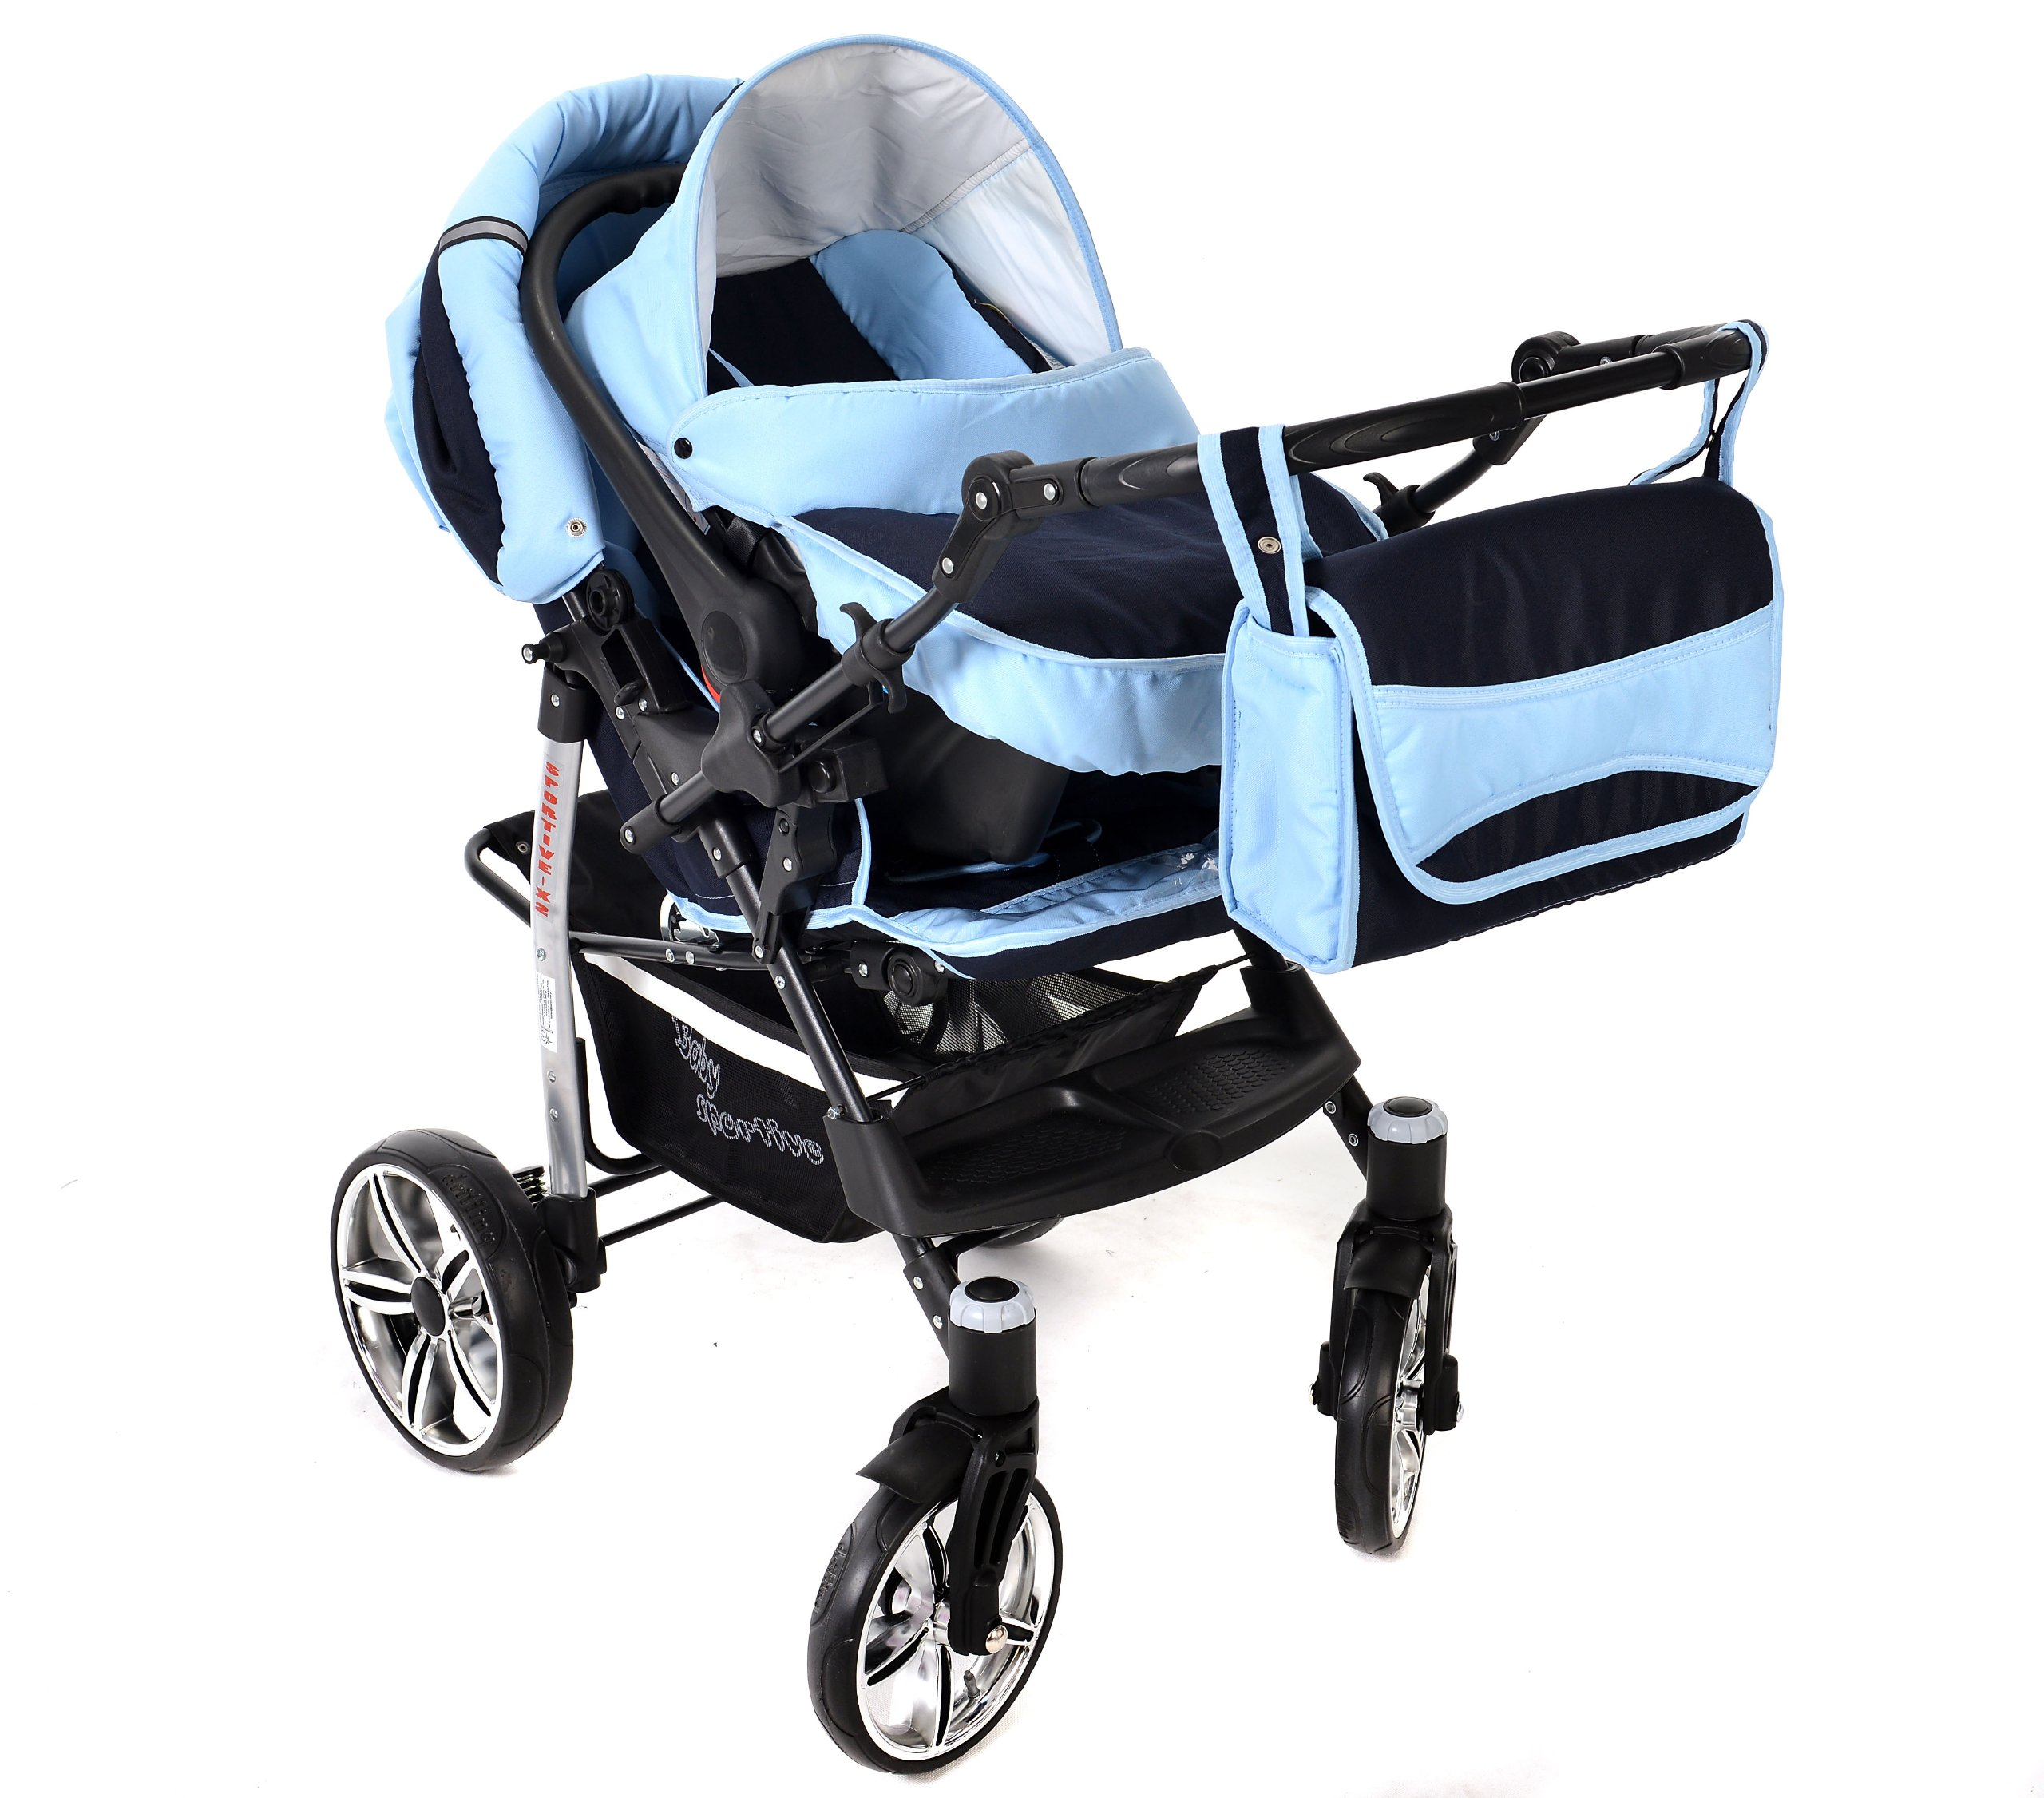 Sportive X2, 3-in-1 Travel System incl. Baby Pram with Swivel Wheels, Car Seat, Pushchair & Accessories (3-in-1 Travel System, Navy-Blue & Blue)  3 in 1 Travel System All in One Set - Pram, Car Carrier Seat and Sport Buggy + Accessories: carrier bag, rain protection, mosquito net, changing mat, removable bottle holder and removable tray for your child's bits and pieces Suitable from birth, Easy Quick Folding System; Large storage basket; Turnable handle bar that allows to face or rear the drive direction; Quick release rear wheels for easy cleaning after muddy walks Front lockable 360o swivel wheels for manoeuvrability , Small sized when folded, fits into many small car trunks, Carry-cot with a removable hood, Reflective elements for better visibility 6